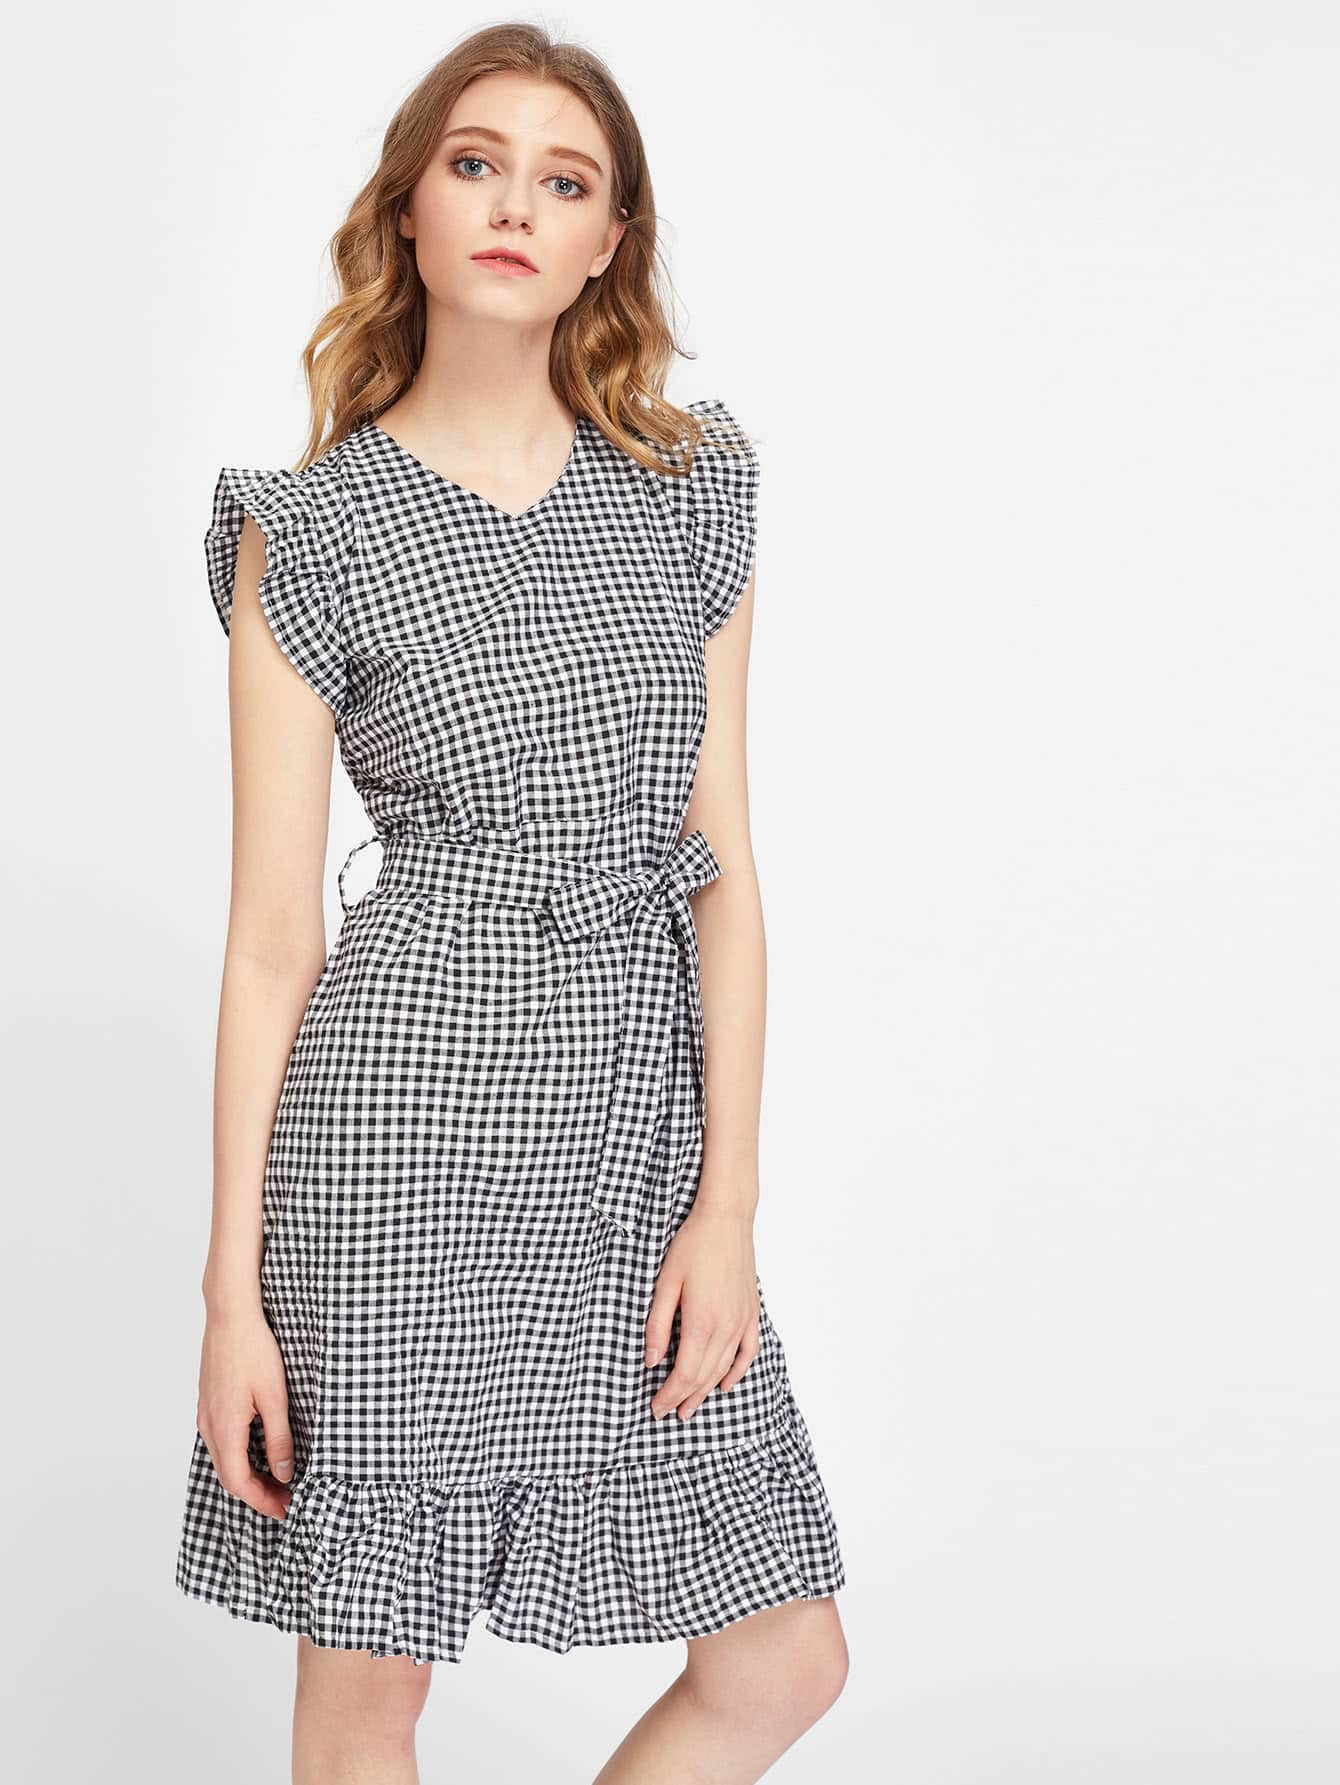 Gingham Frill Trim Self Tie Dress Shein Sheinside